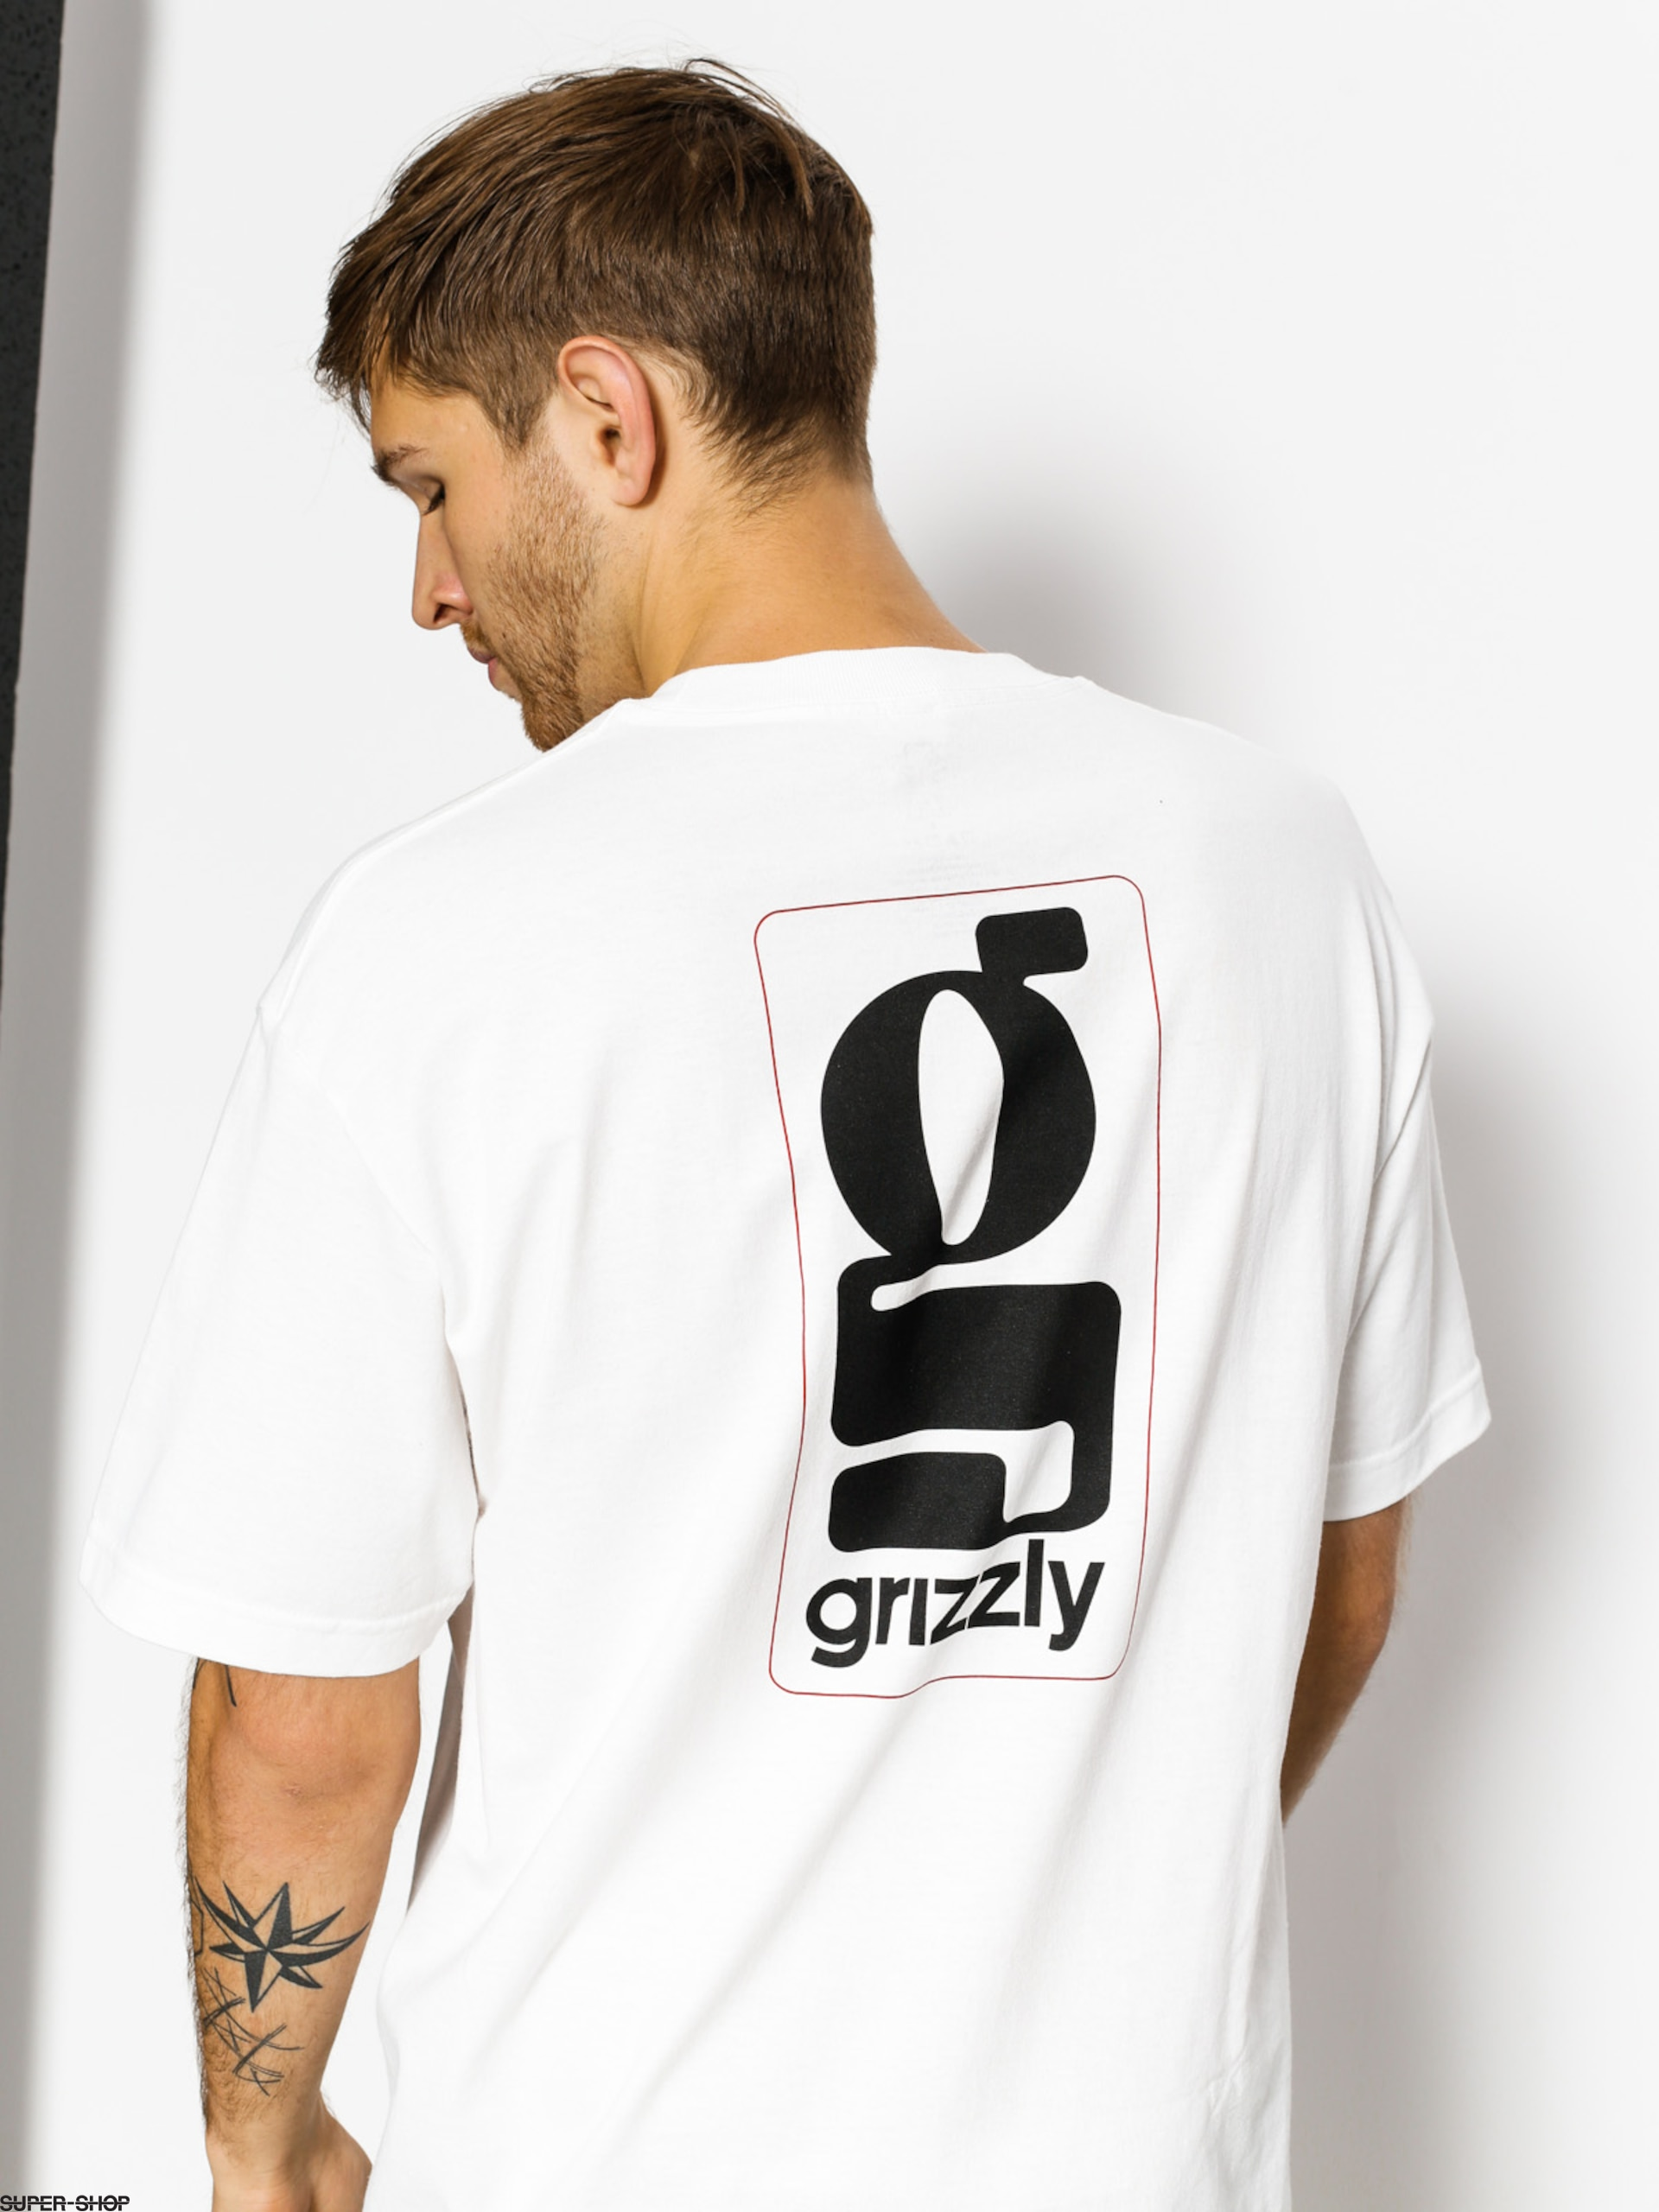 Grizzly Griptape T-shirt Gentlemans (white)